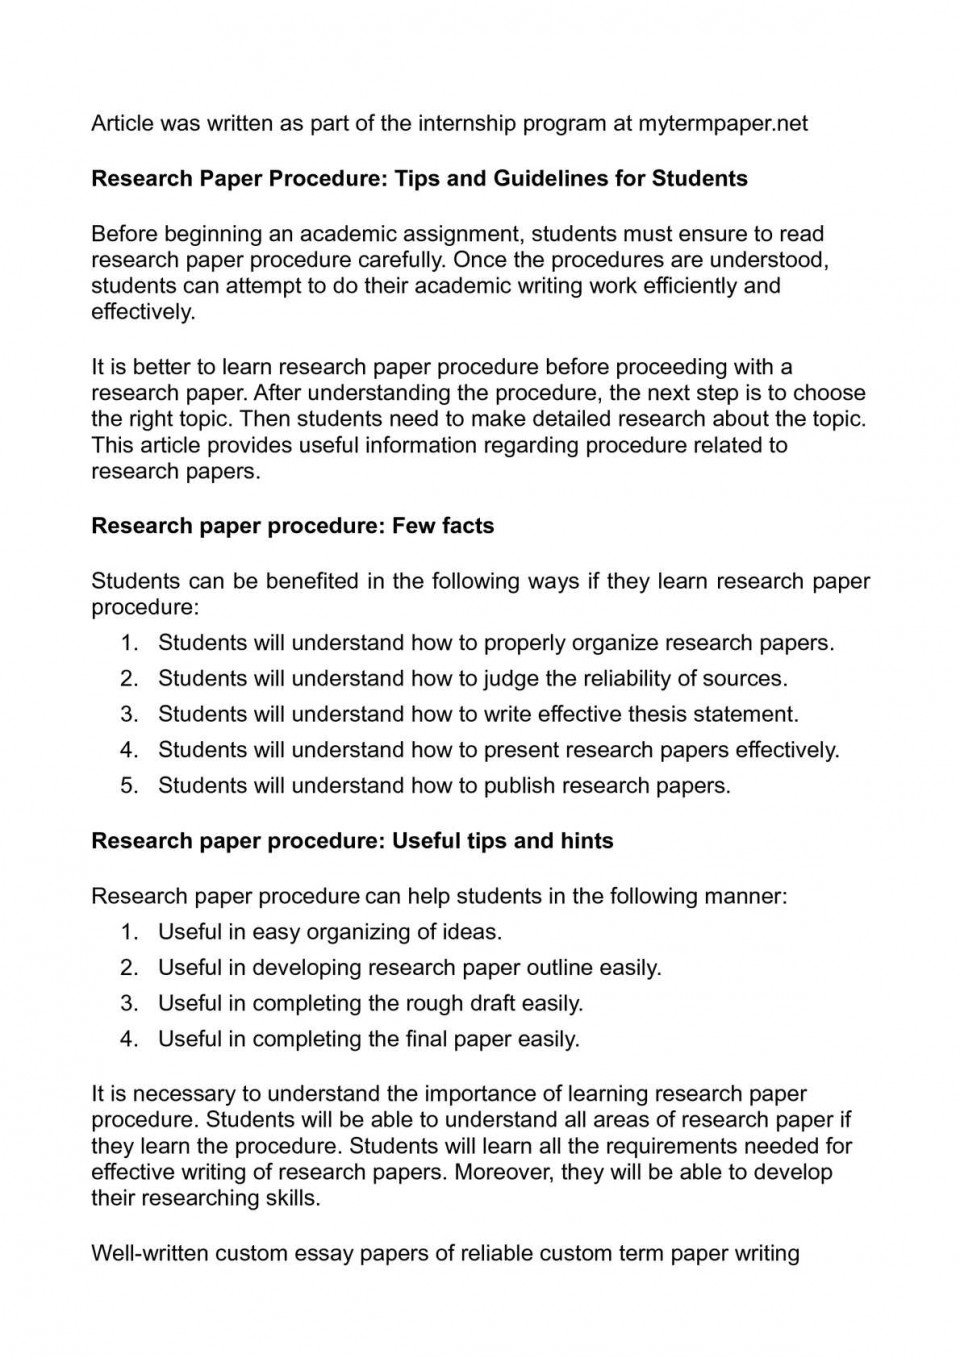 018 How To Do Research Paper Marvelous Notecards Fast A Outline In Apa 960